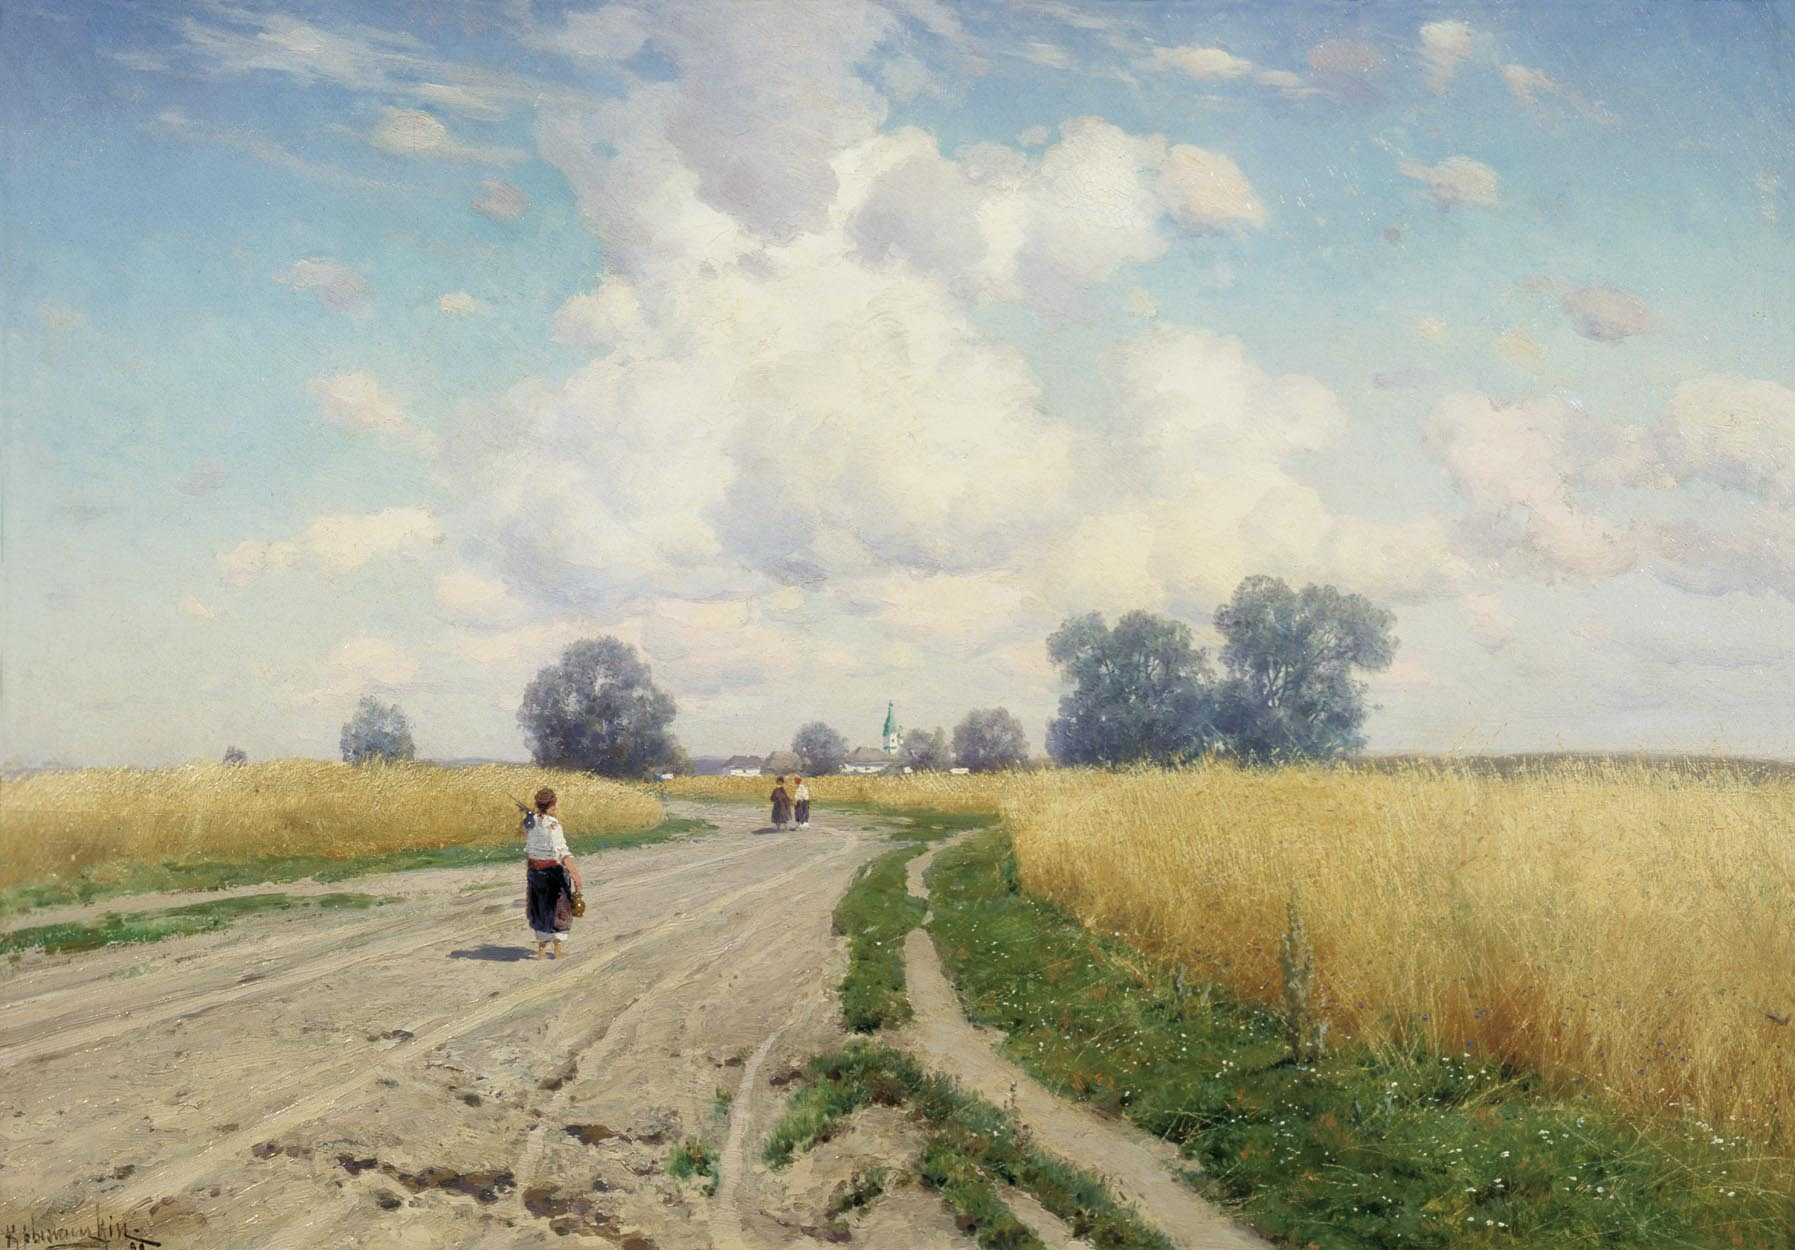 painting:   Doroga   (translated, The Road), by Konstantin Kryzhitsky, 1899.